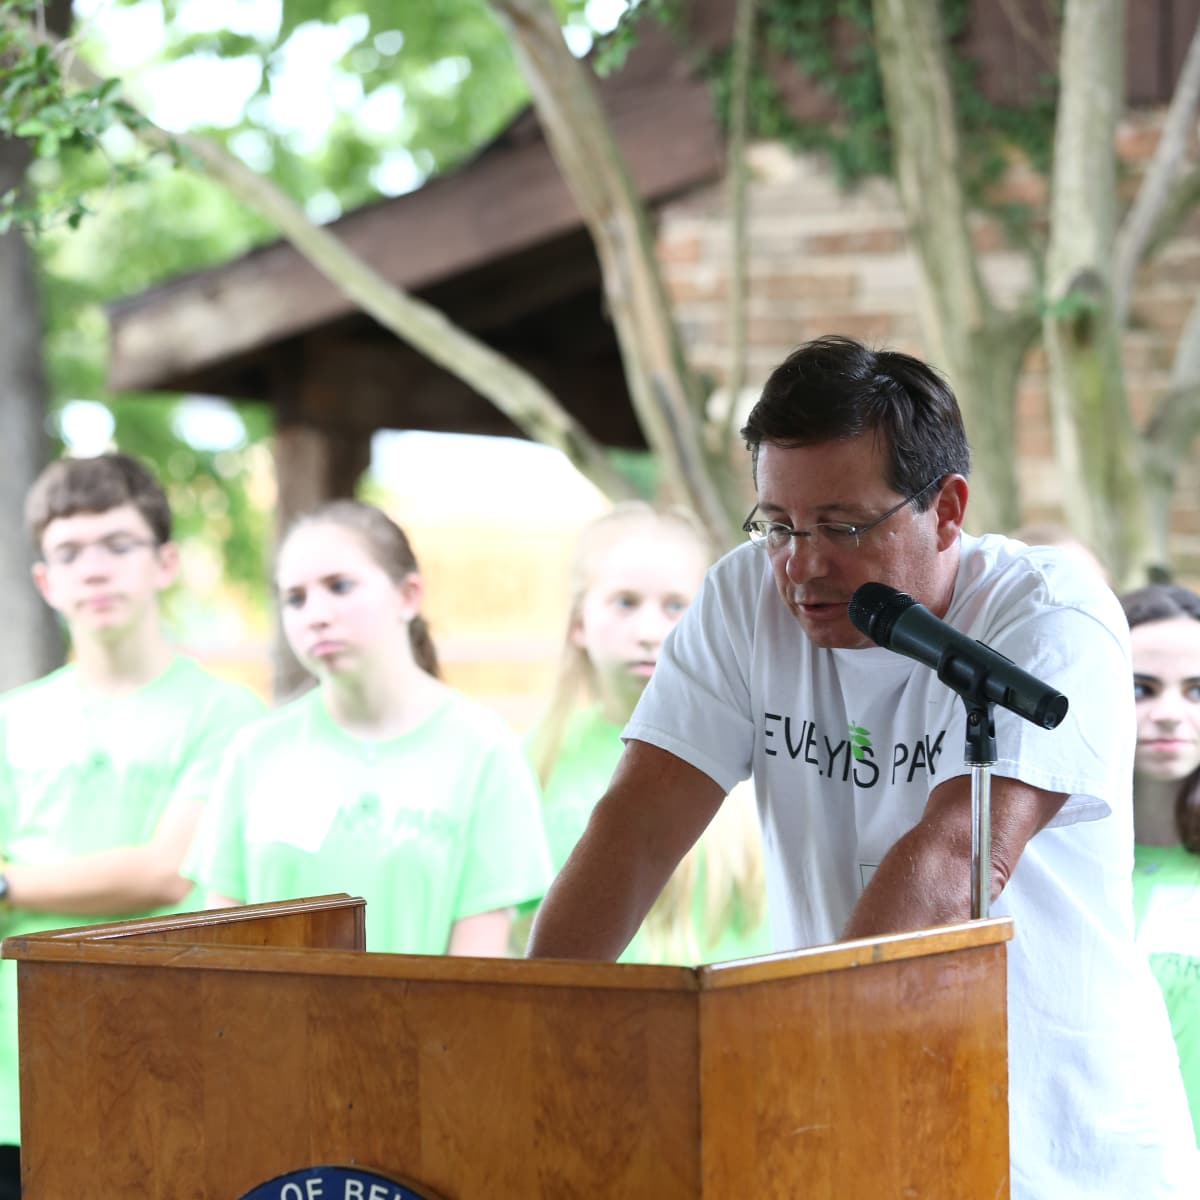 News, Shelby, Evelyn's Park Groundbreaking, june 2015, Keith Rubenstein